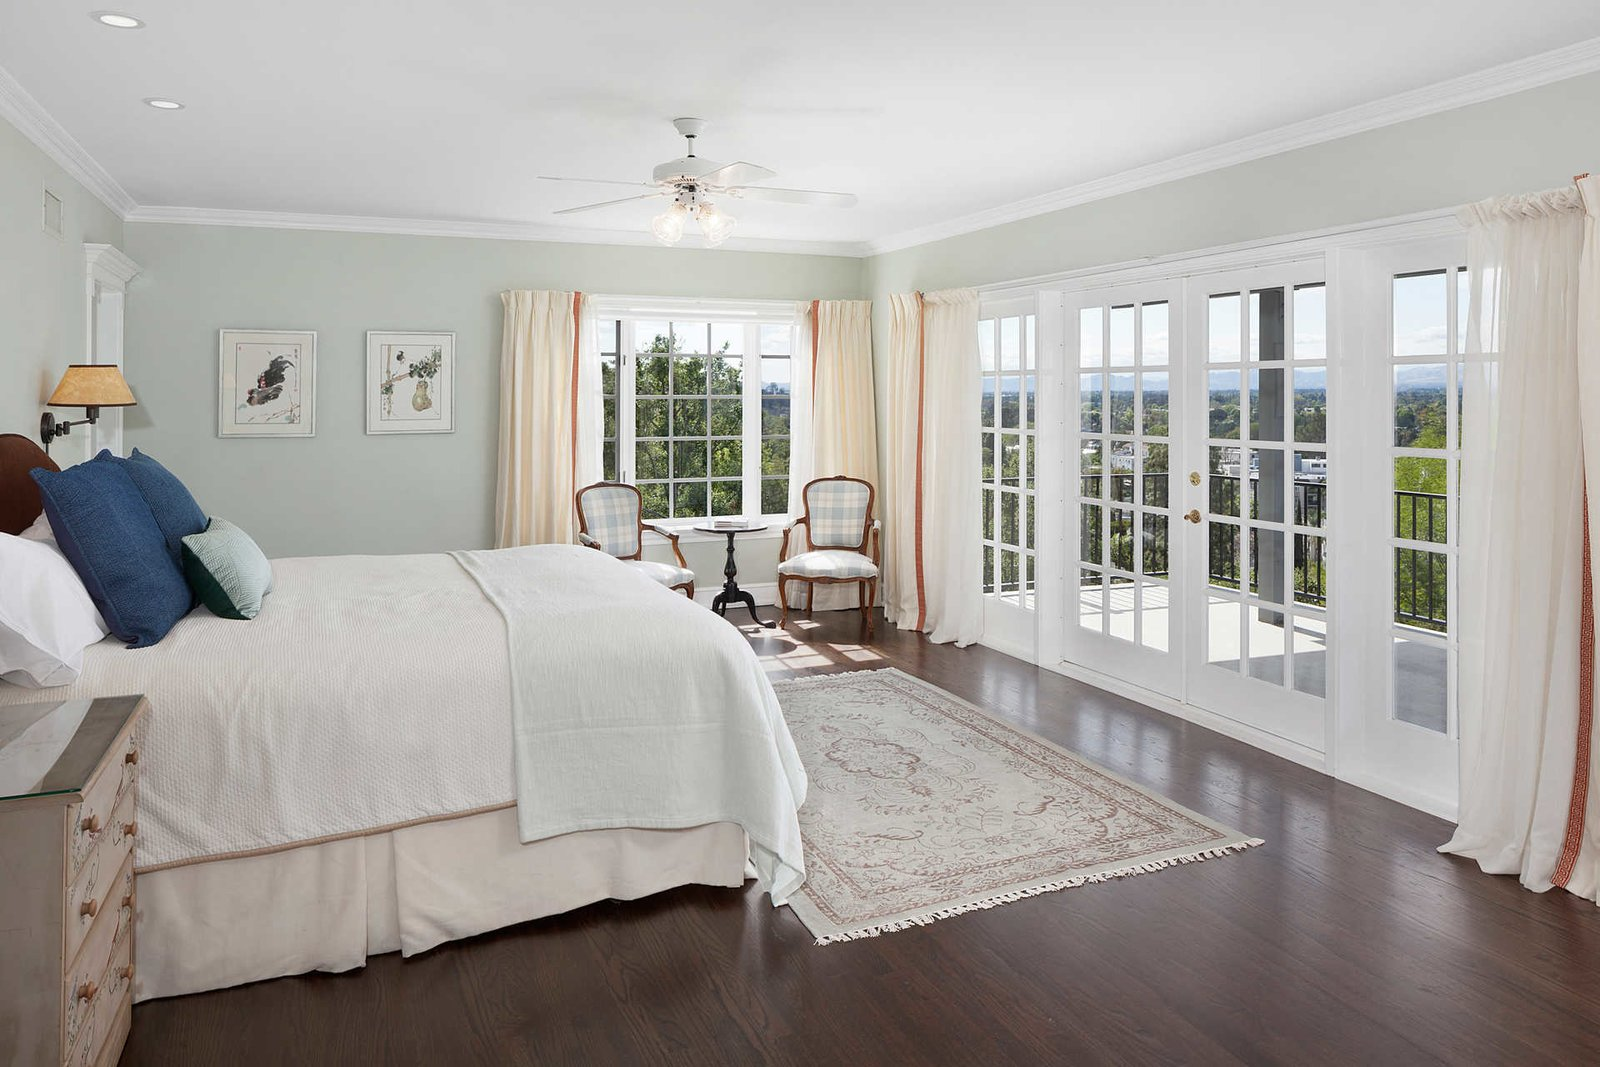 The exceptional master suite opens to a veranda and includes two walk-in closets.